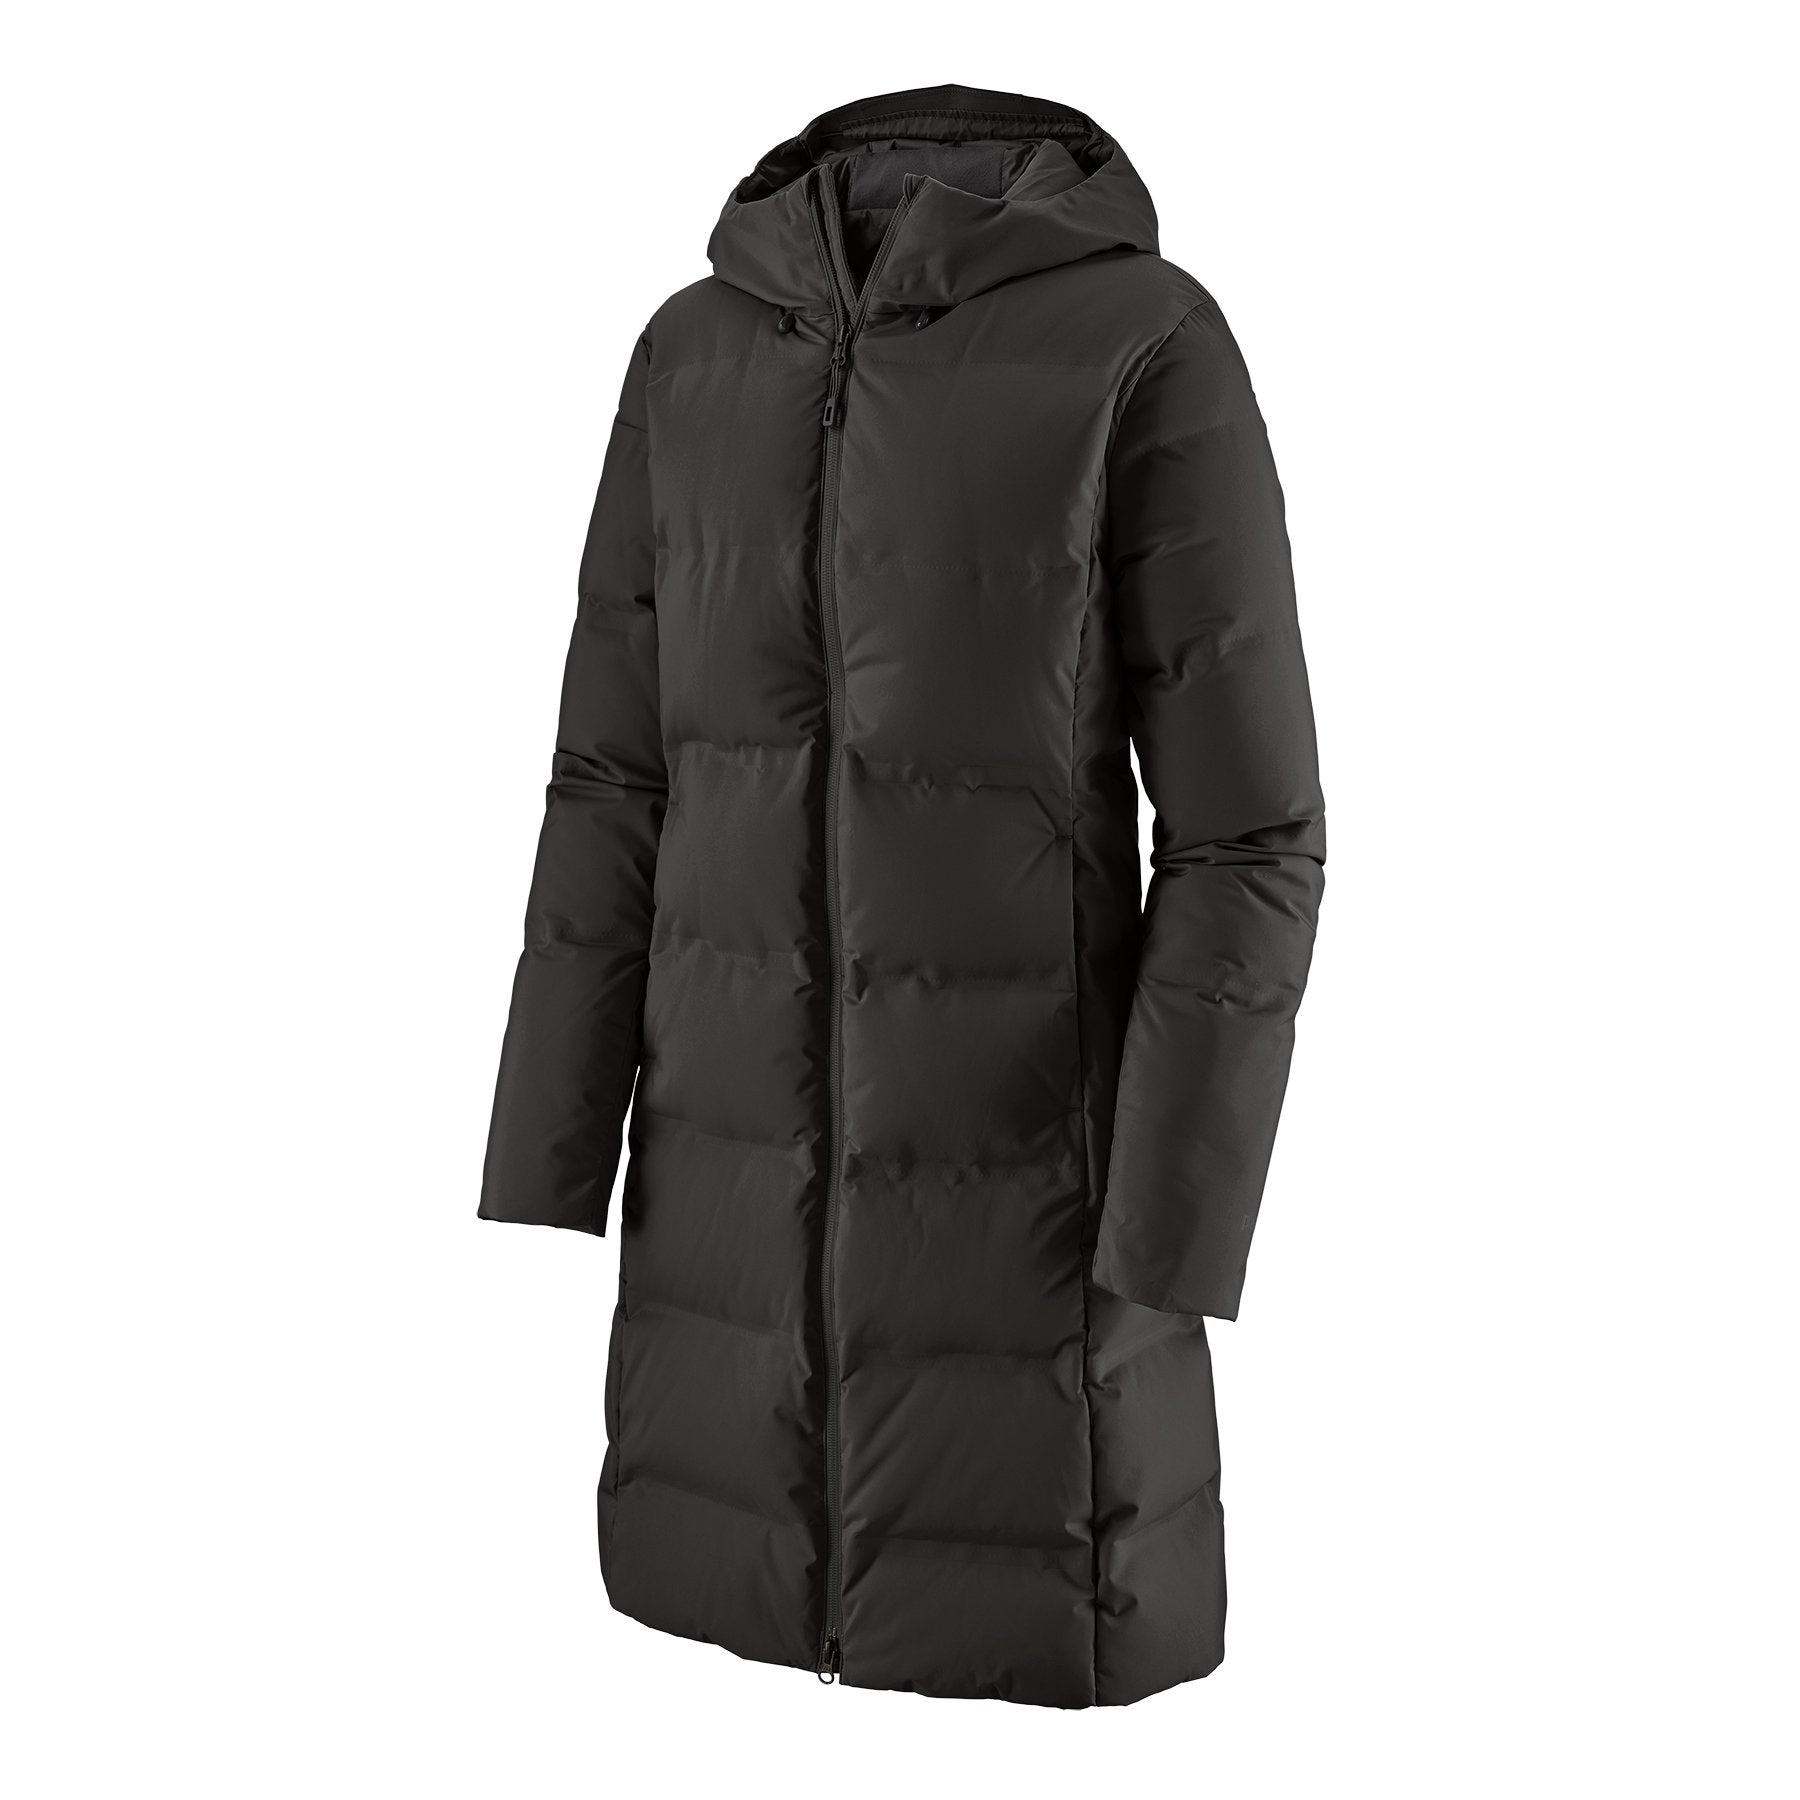 Patagonia - W's Jackson Glacier Parka - Recycled Down / Recycled Polyester - Weekendbee - sustainable sportswear